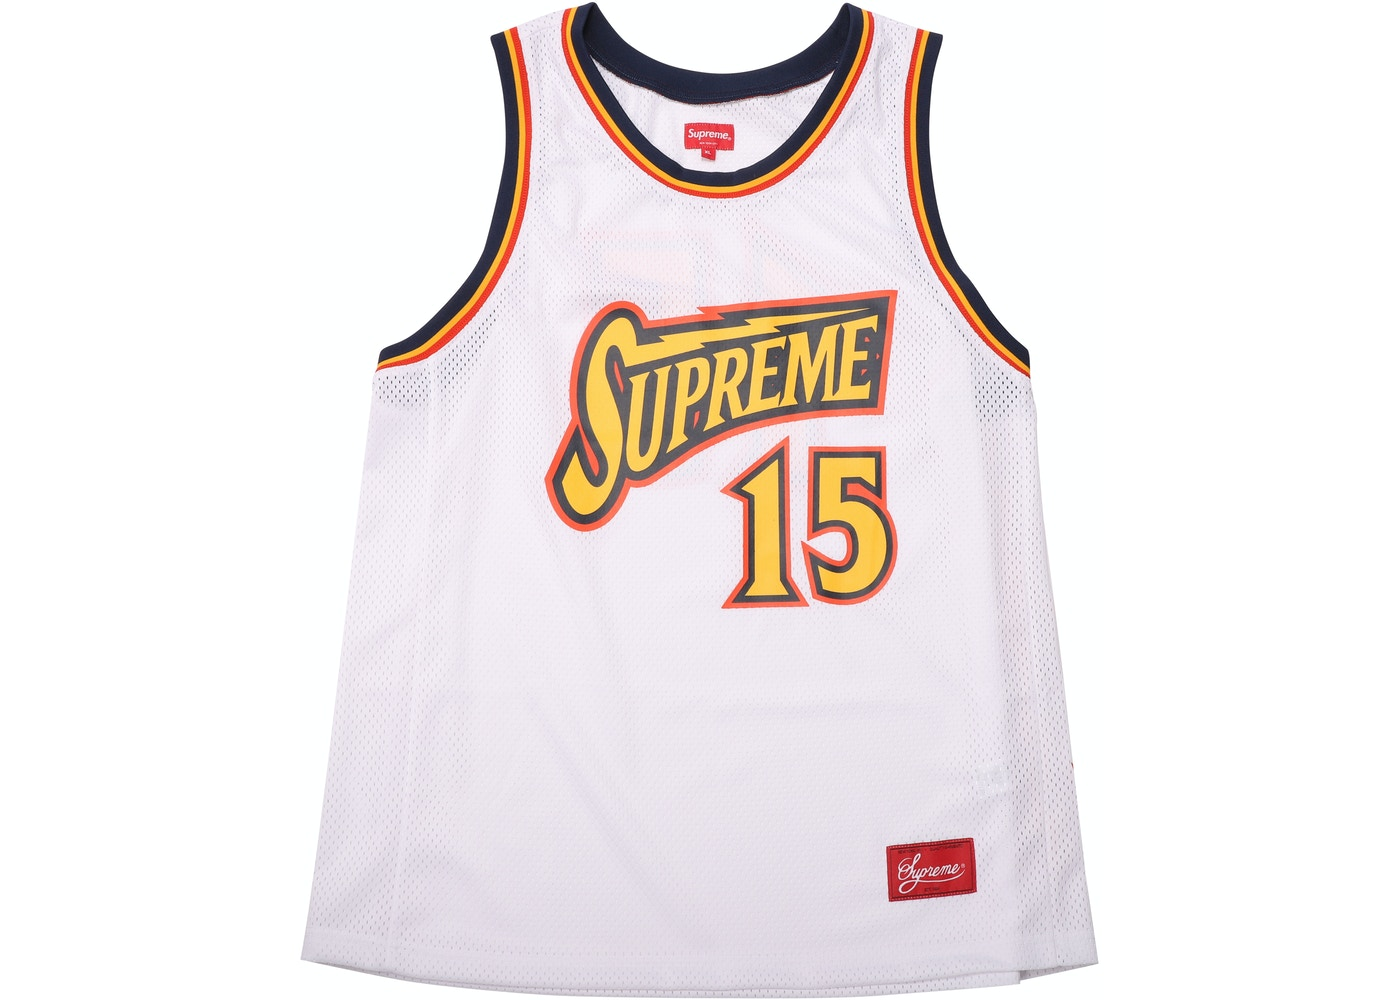 the best attitude 3d668 82769 Supreme Bolt Basketball Jersey White